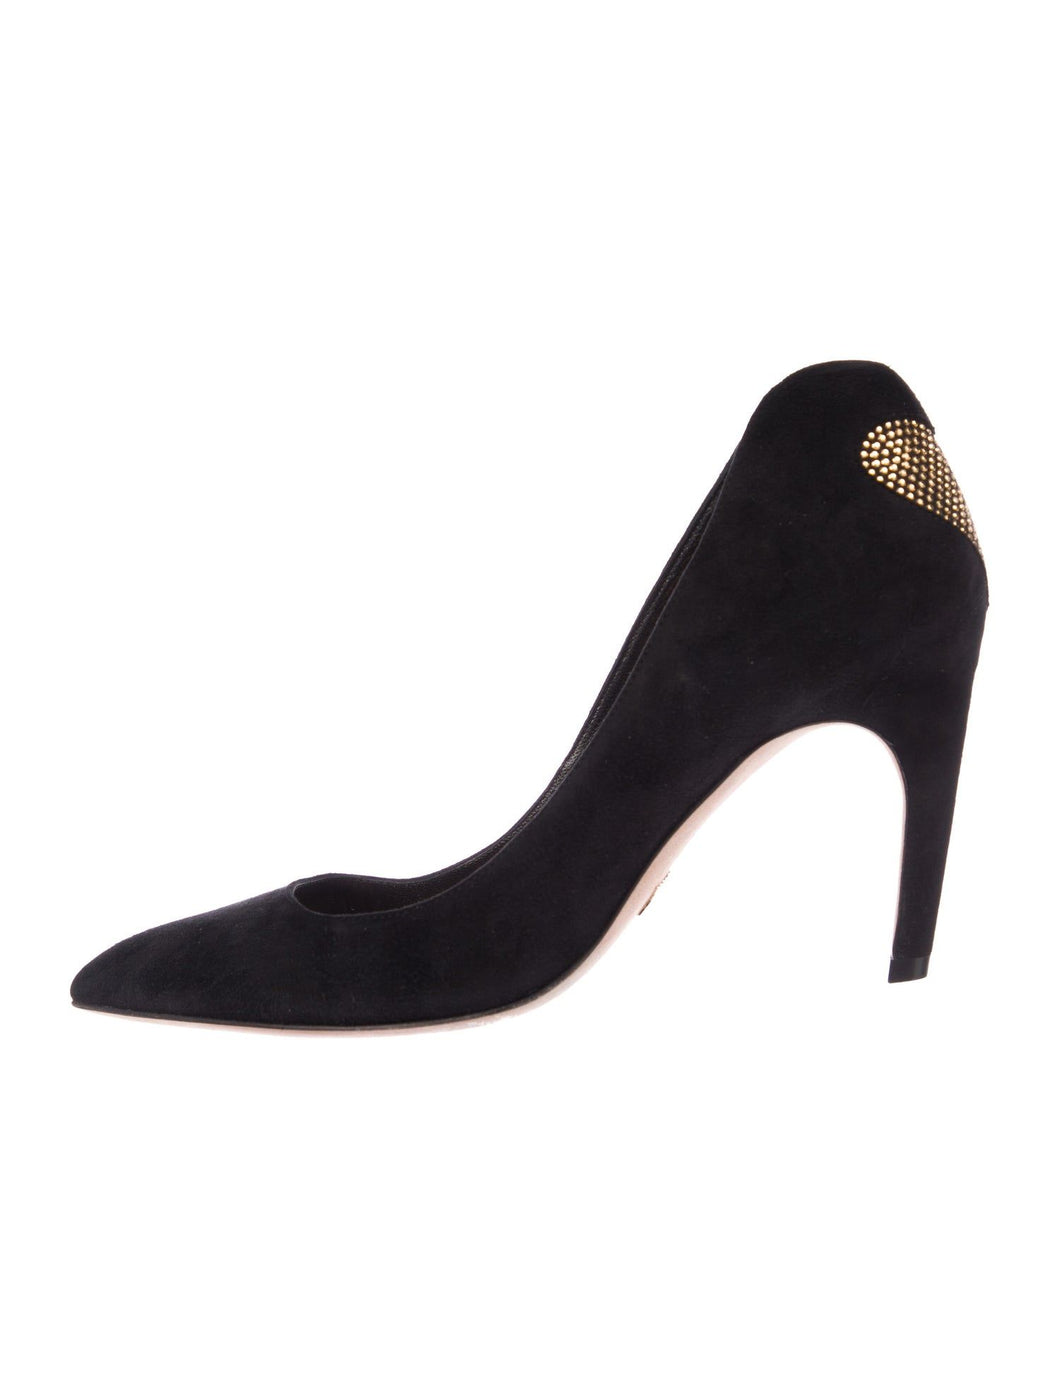 Christian Dior Heart Suede Pumps